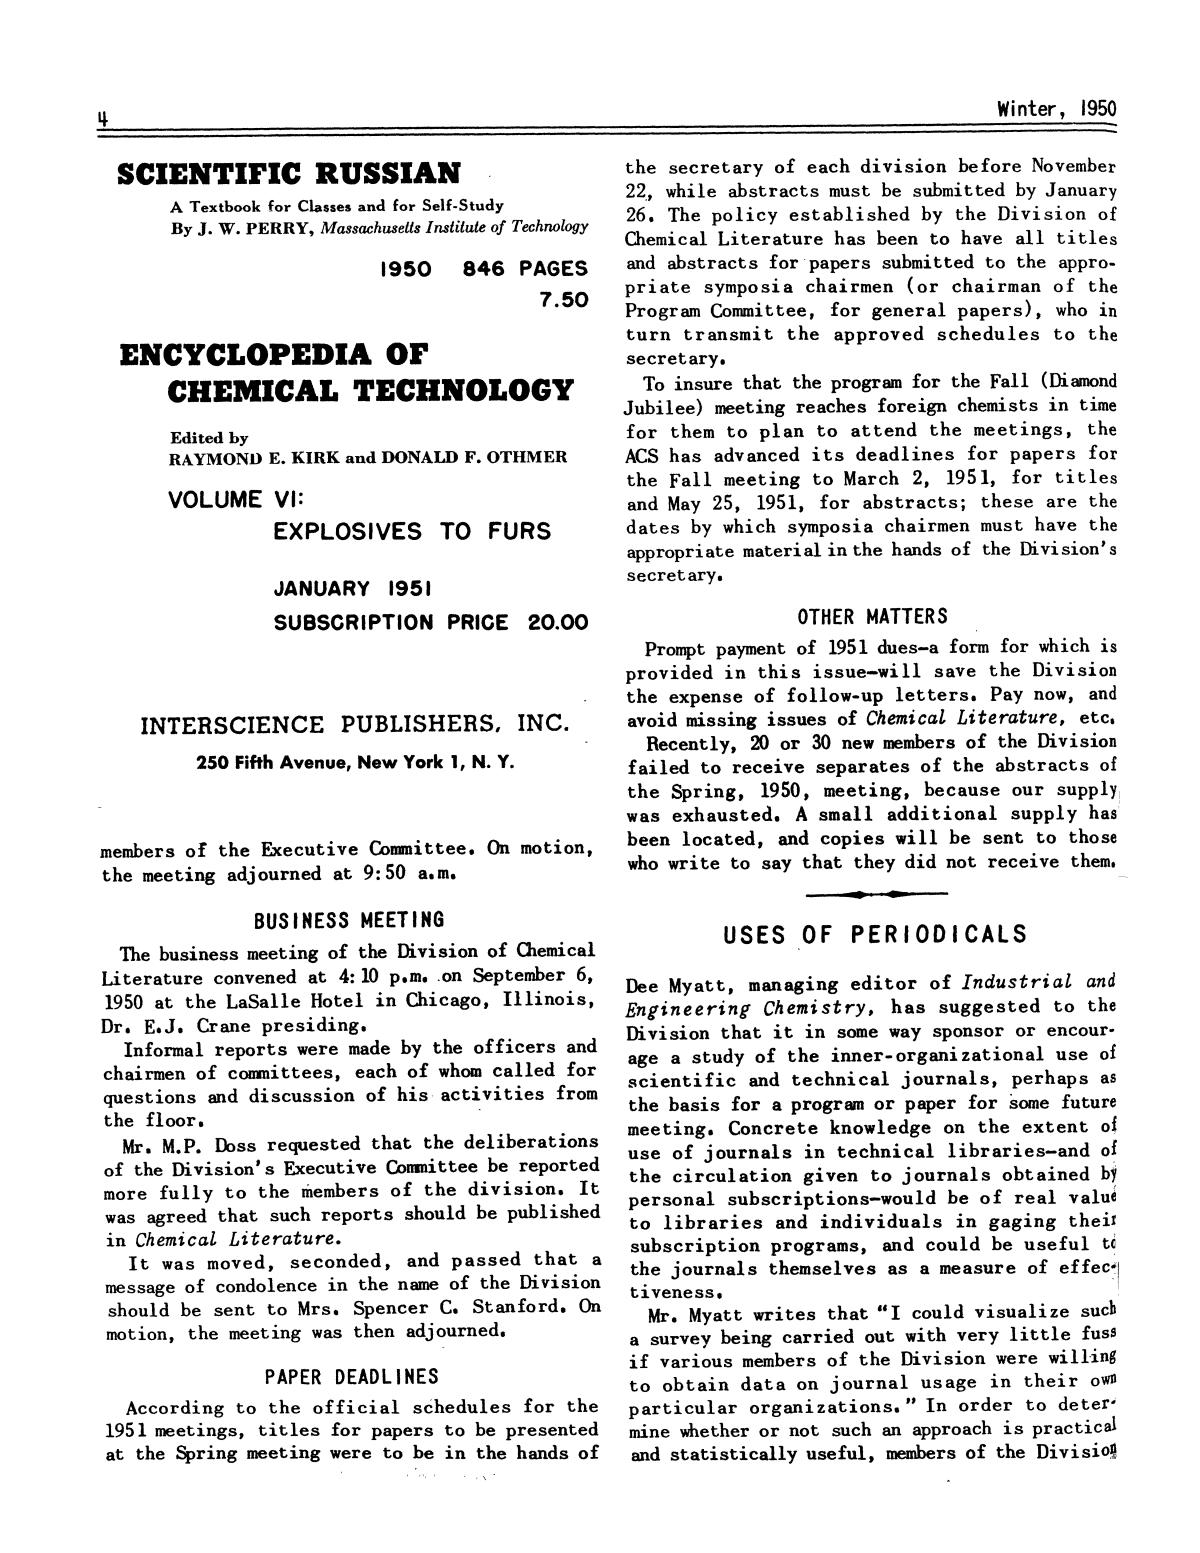 Chemical Literature, Volume 2, Number 4, Winter 1950                                                                                                      4